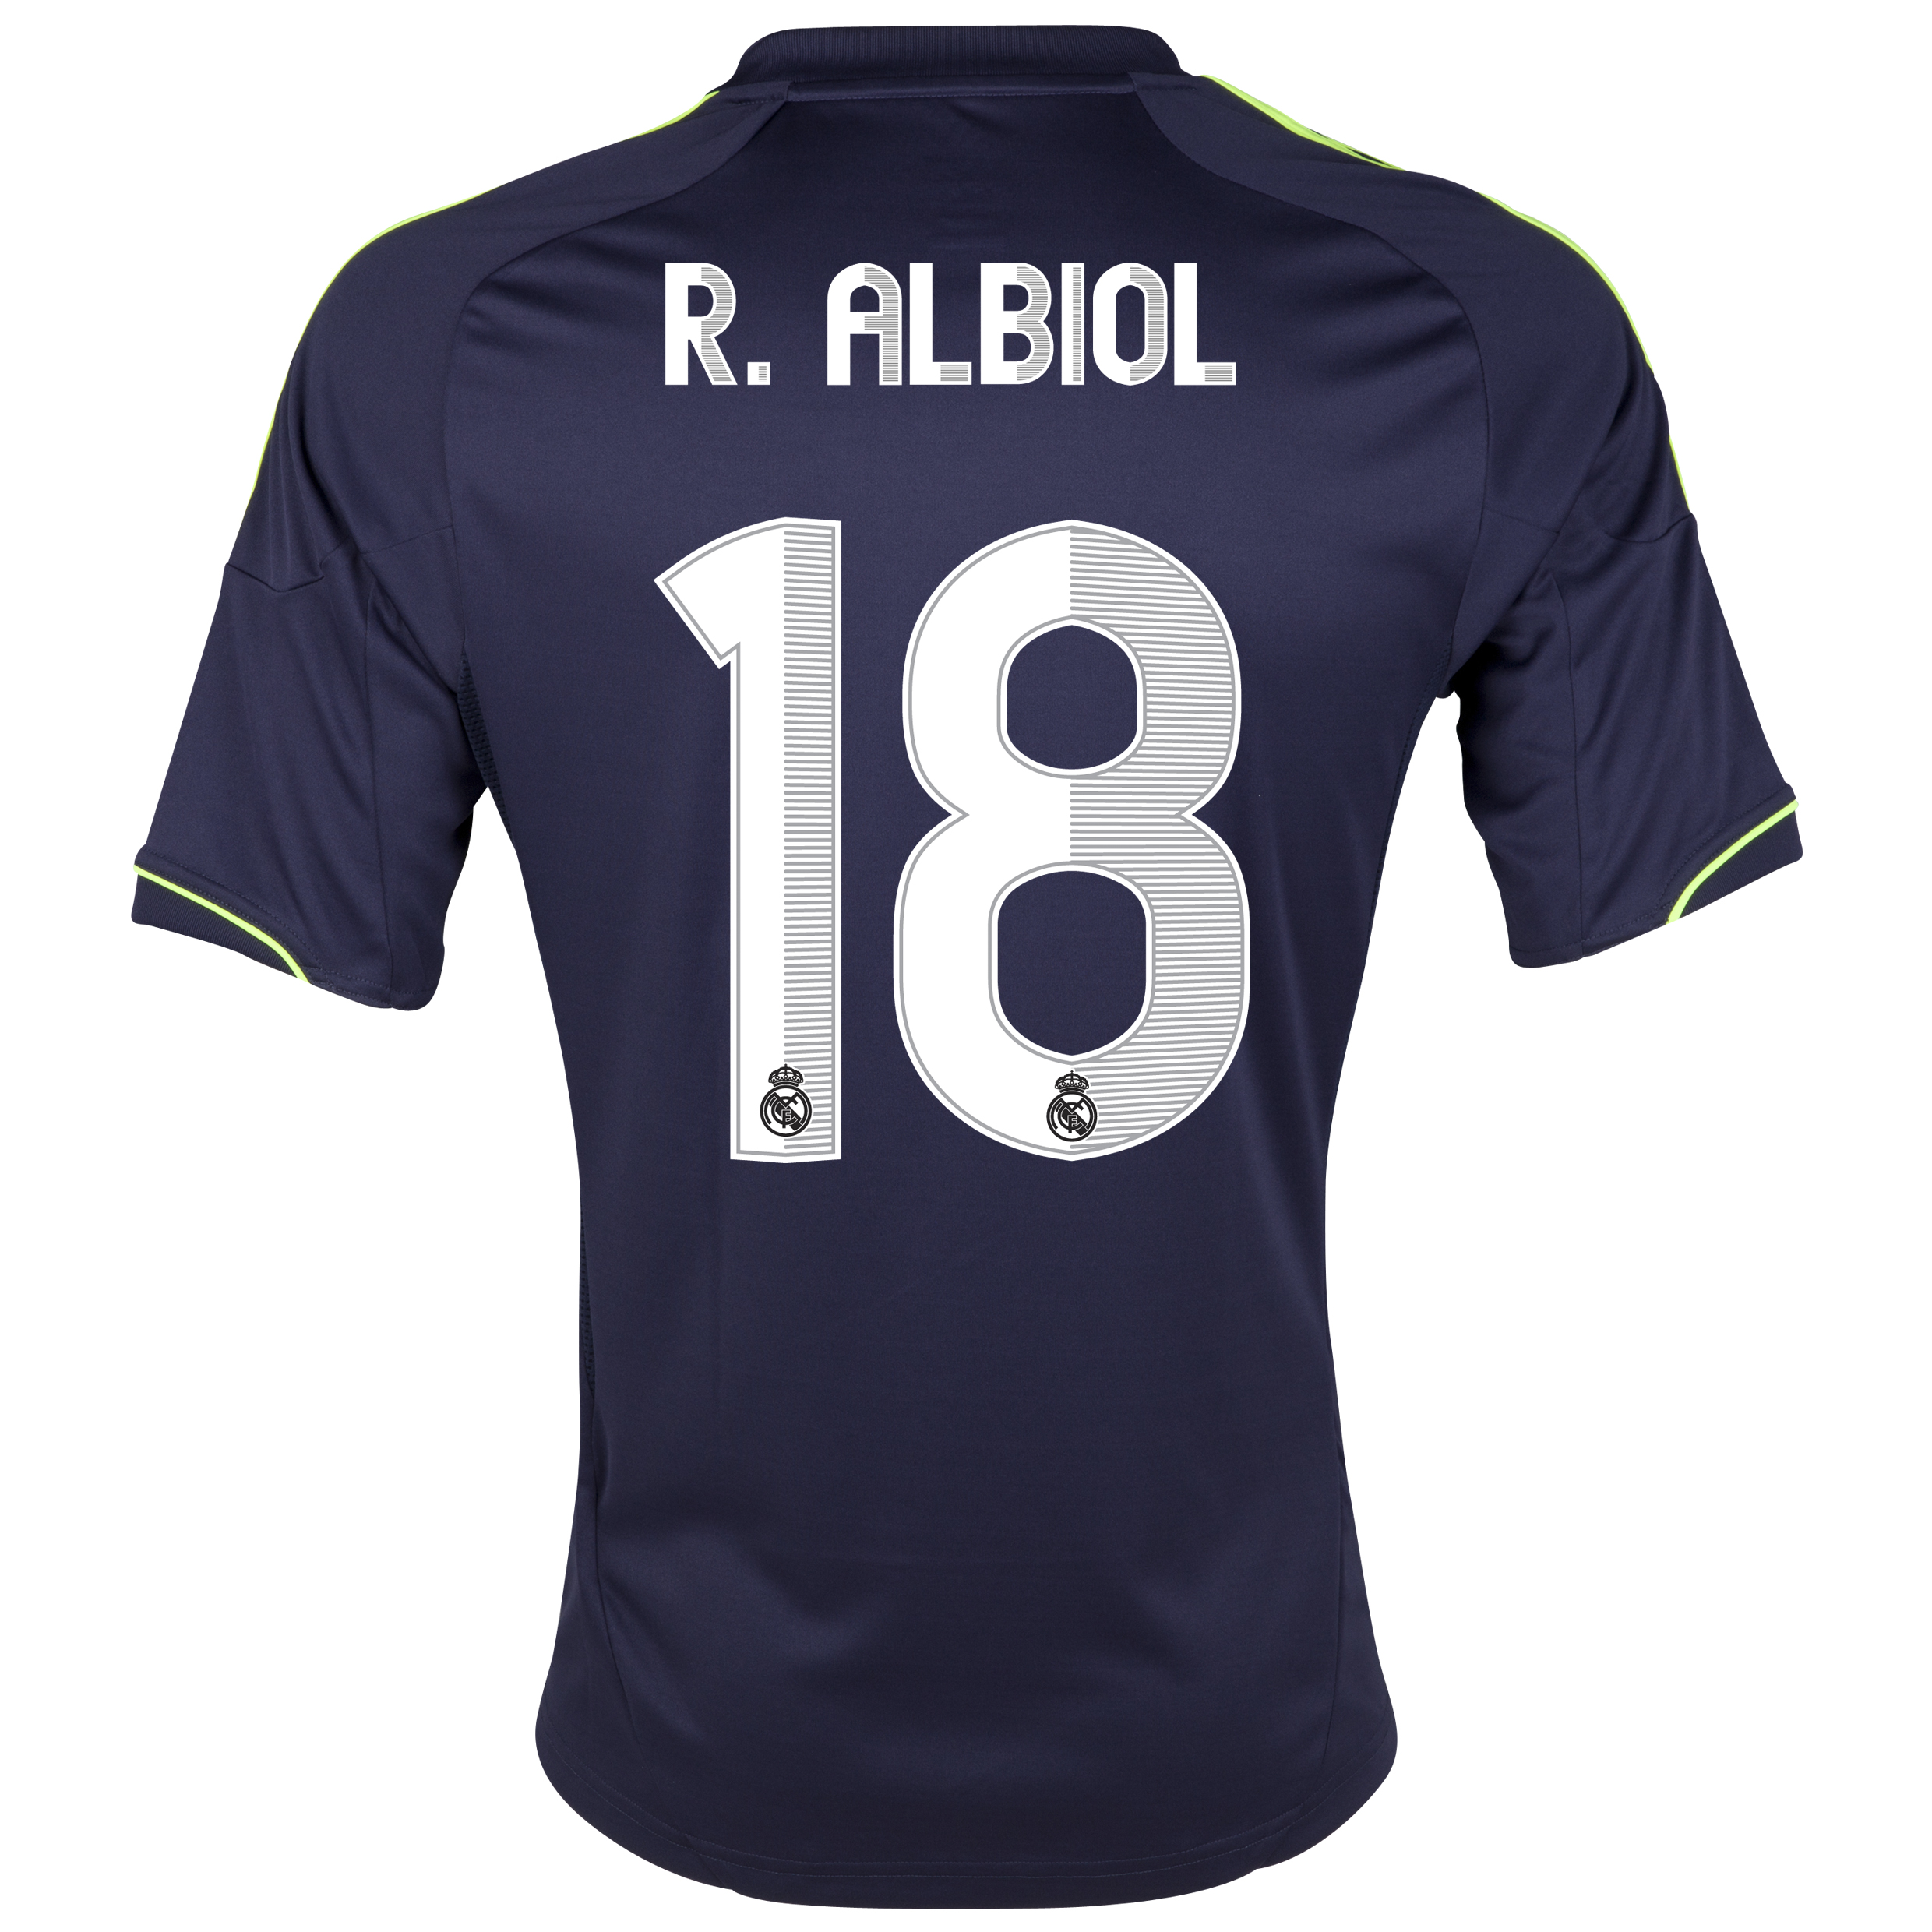 Camiseta visitante Real Madrid 2012/13 con impresin 18 R.Albiol